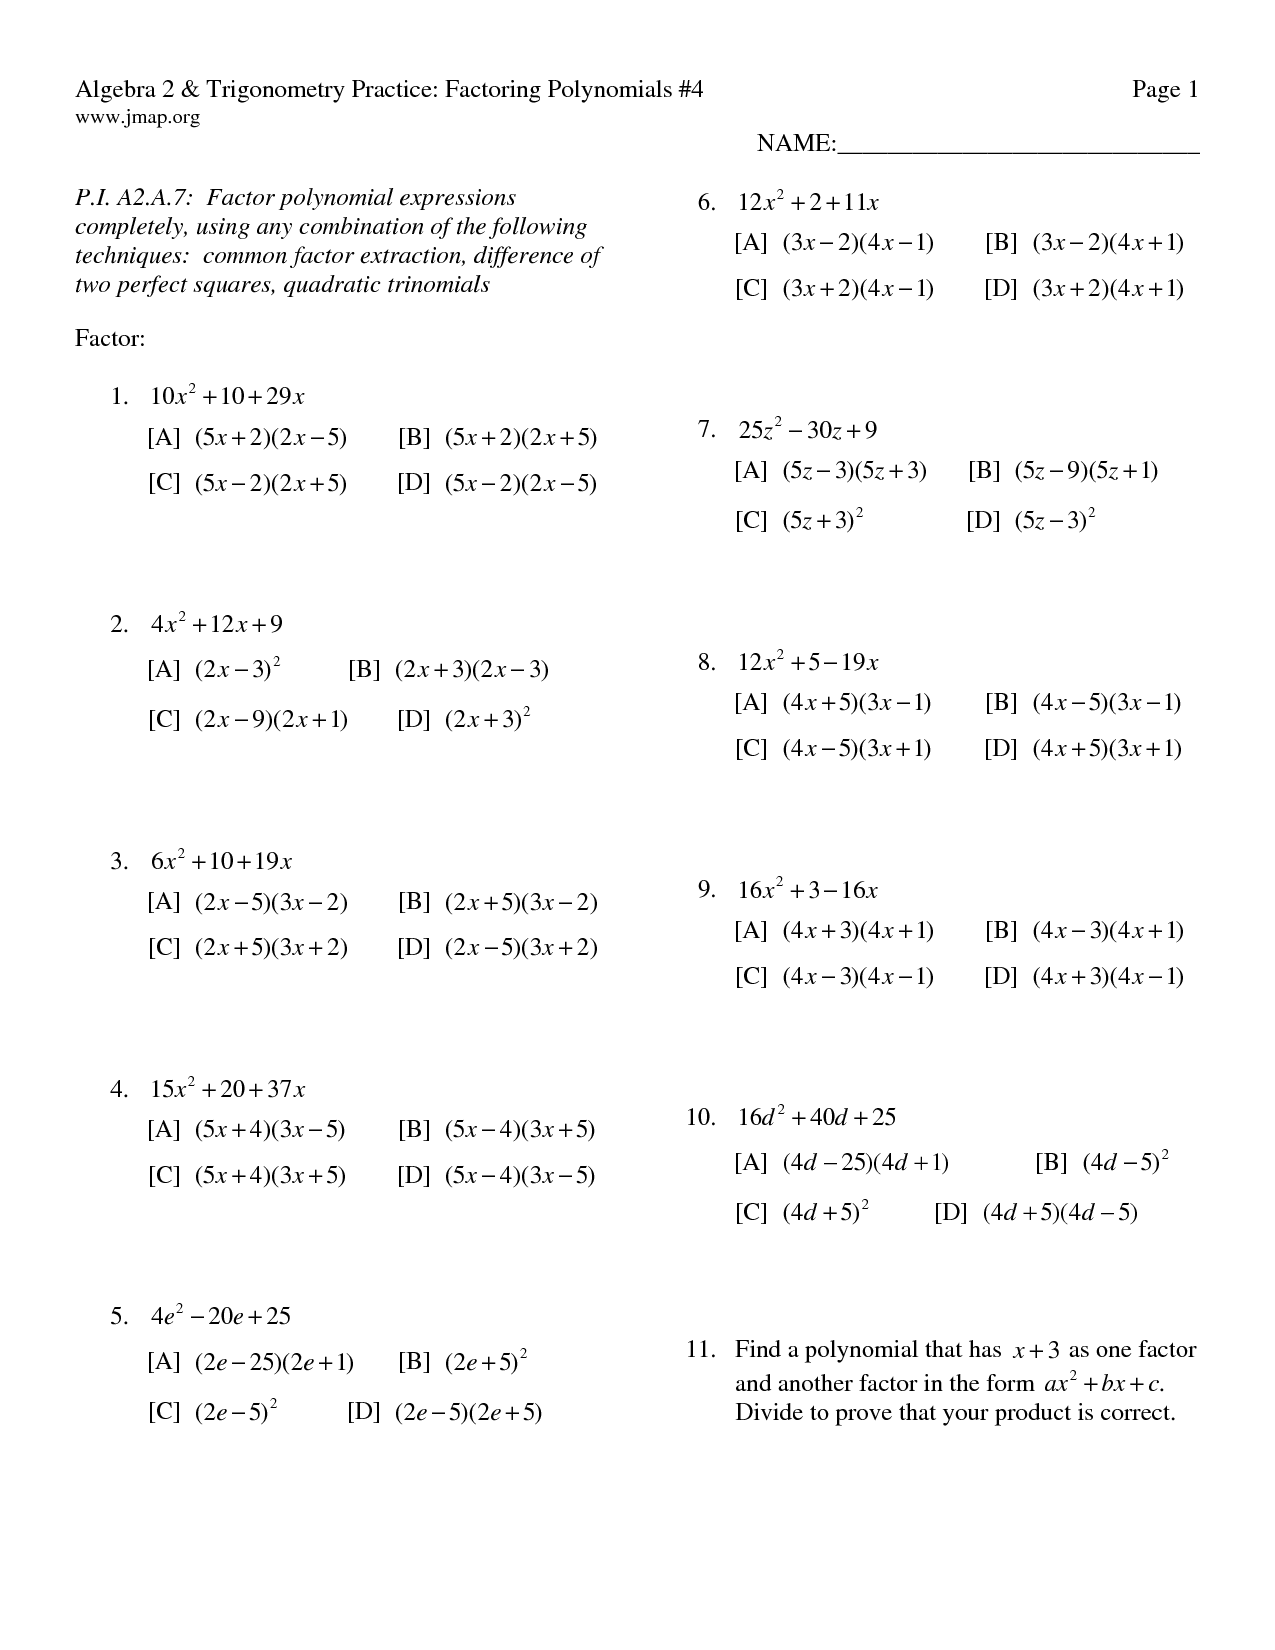 Distributive Property Homework Worksheet